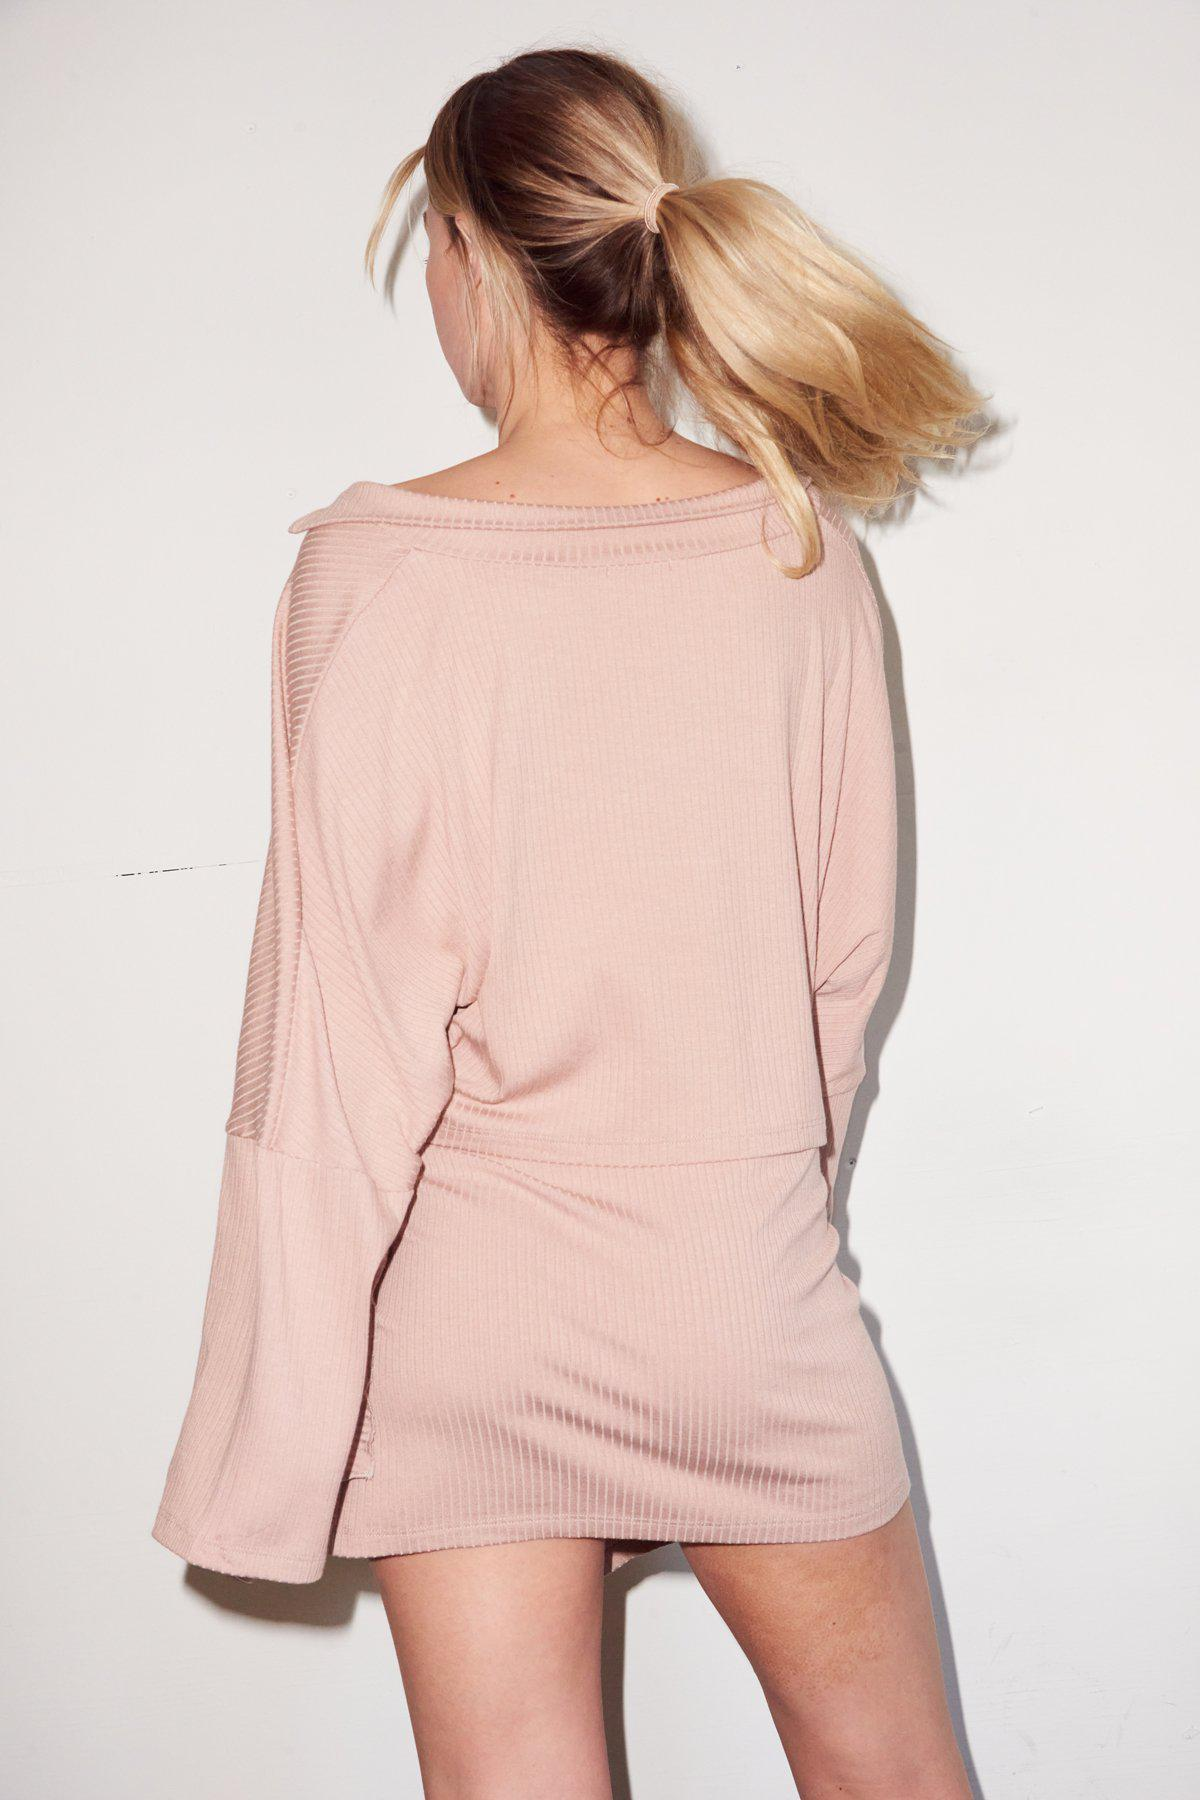 Carusso Wrap Skirt - Nude 2